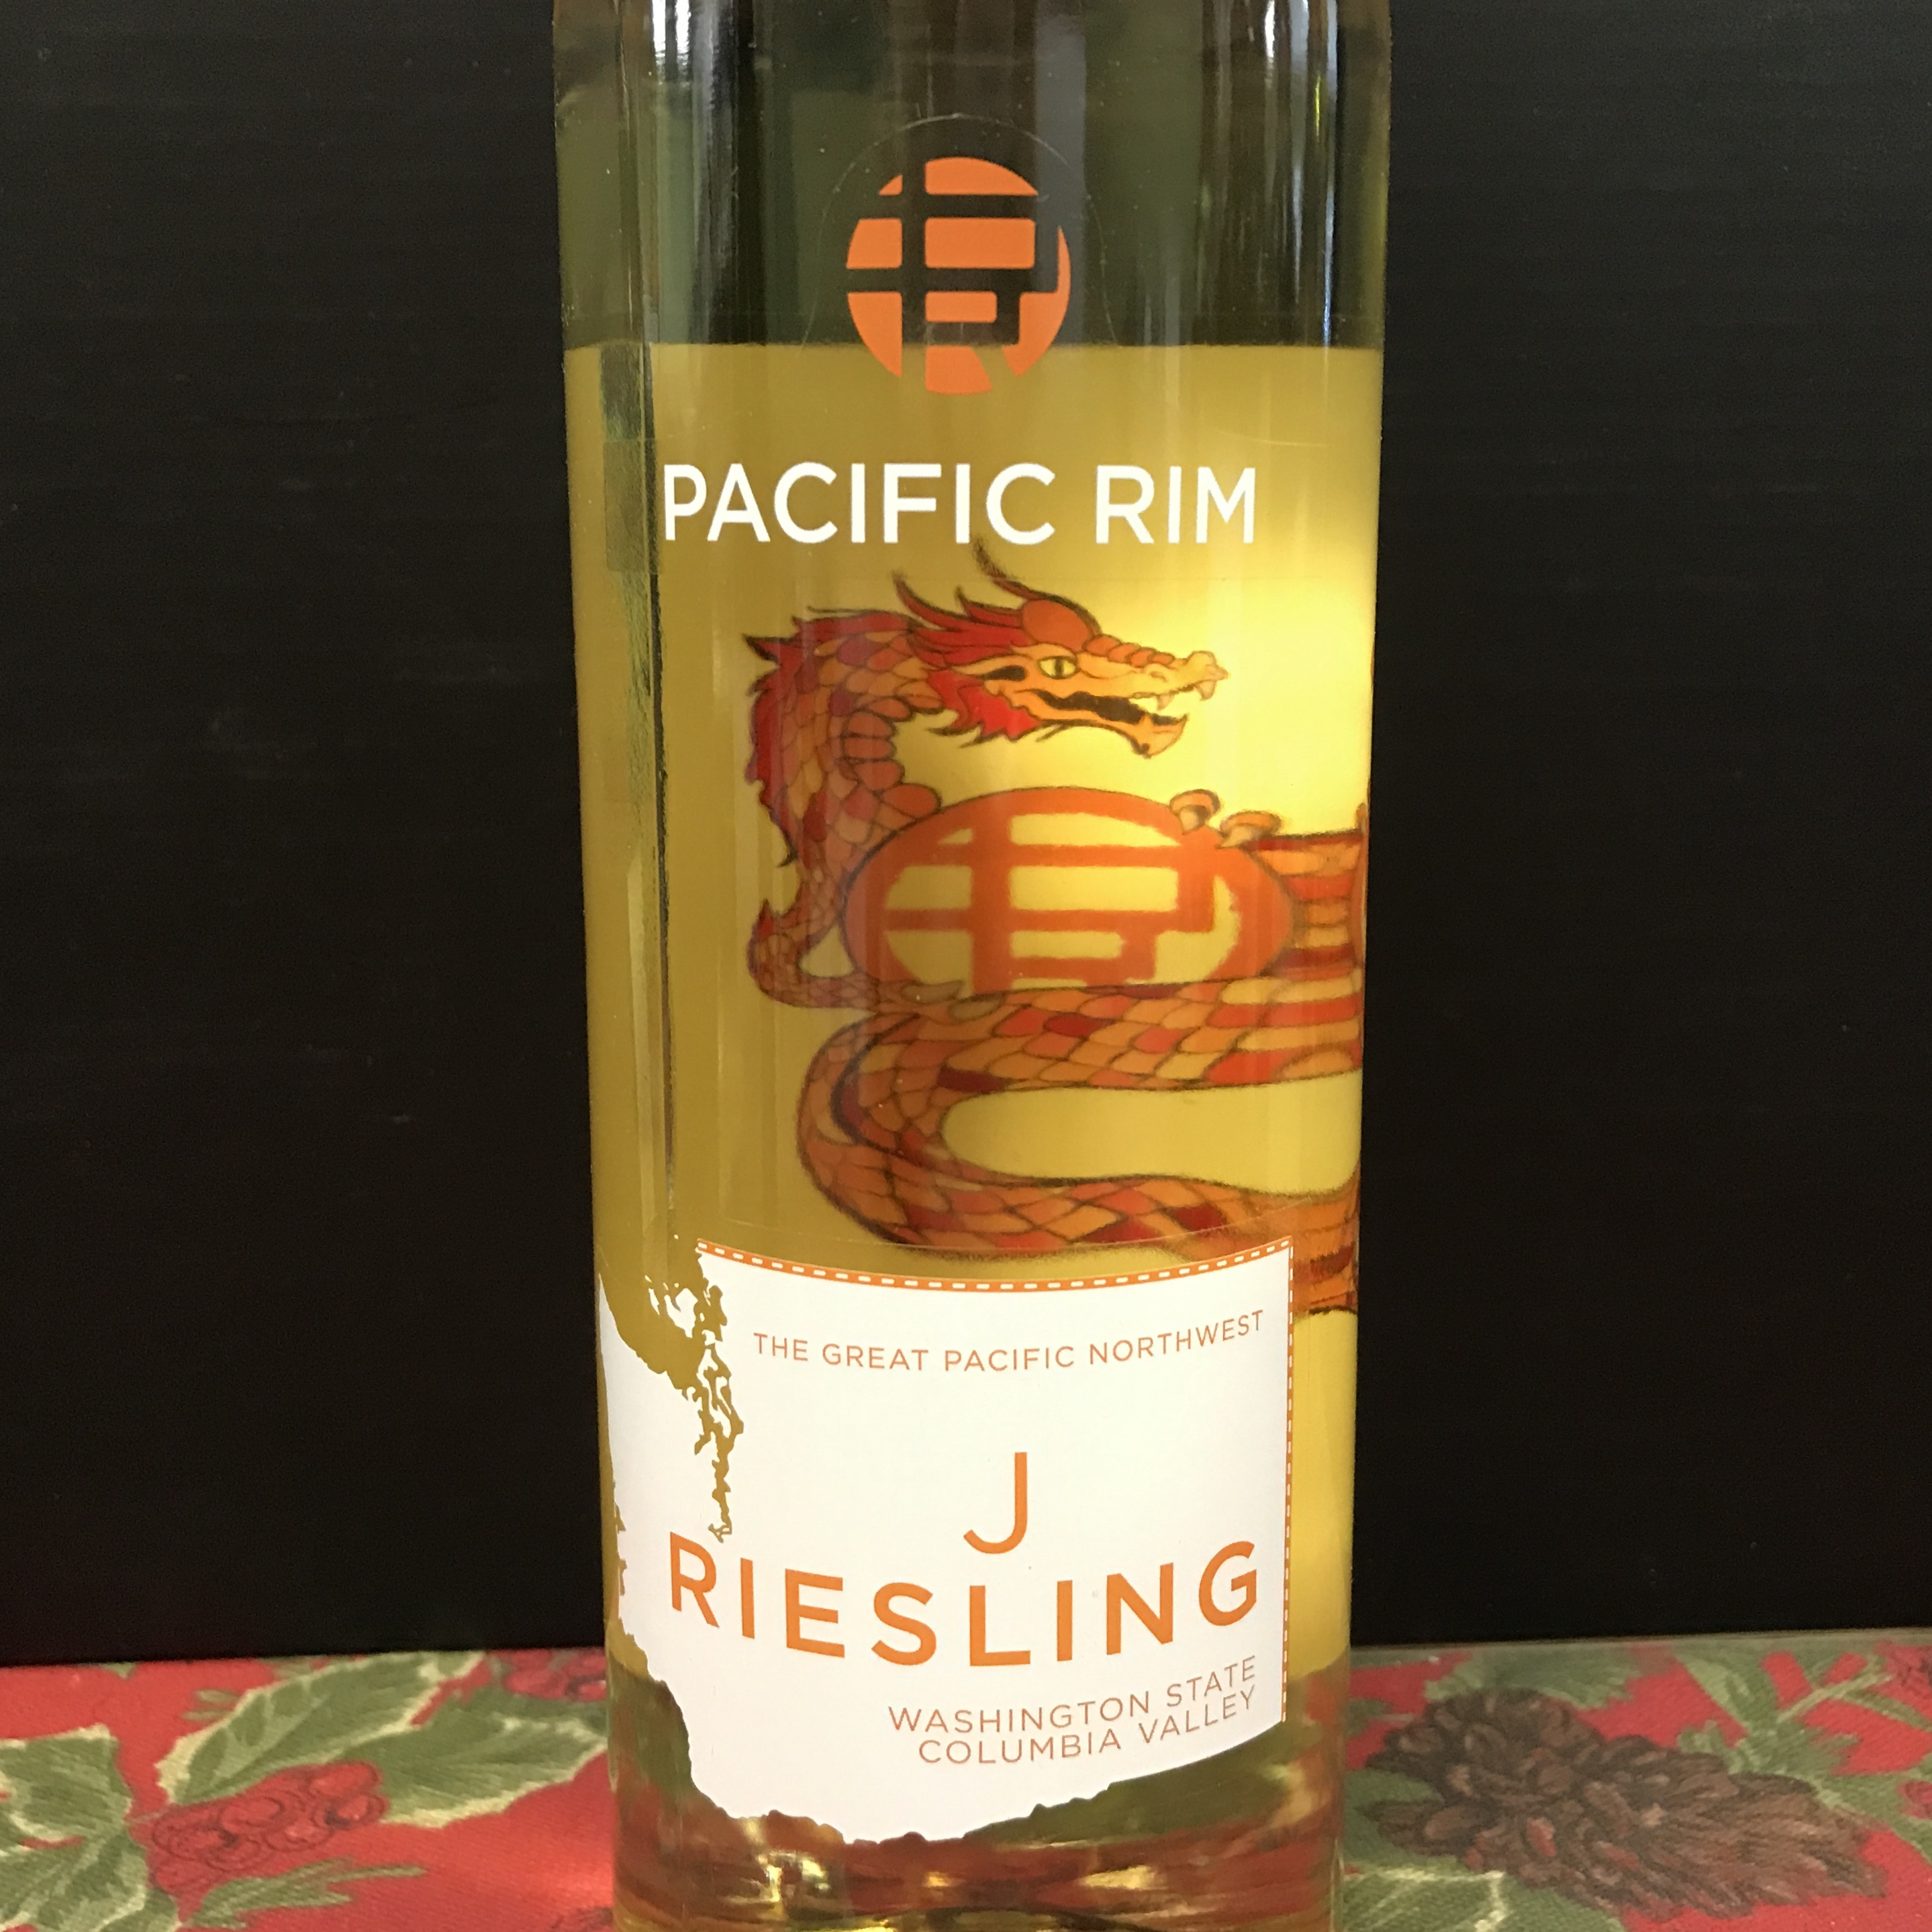 Pacific Rim J.Riesling Columbia River 2018